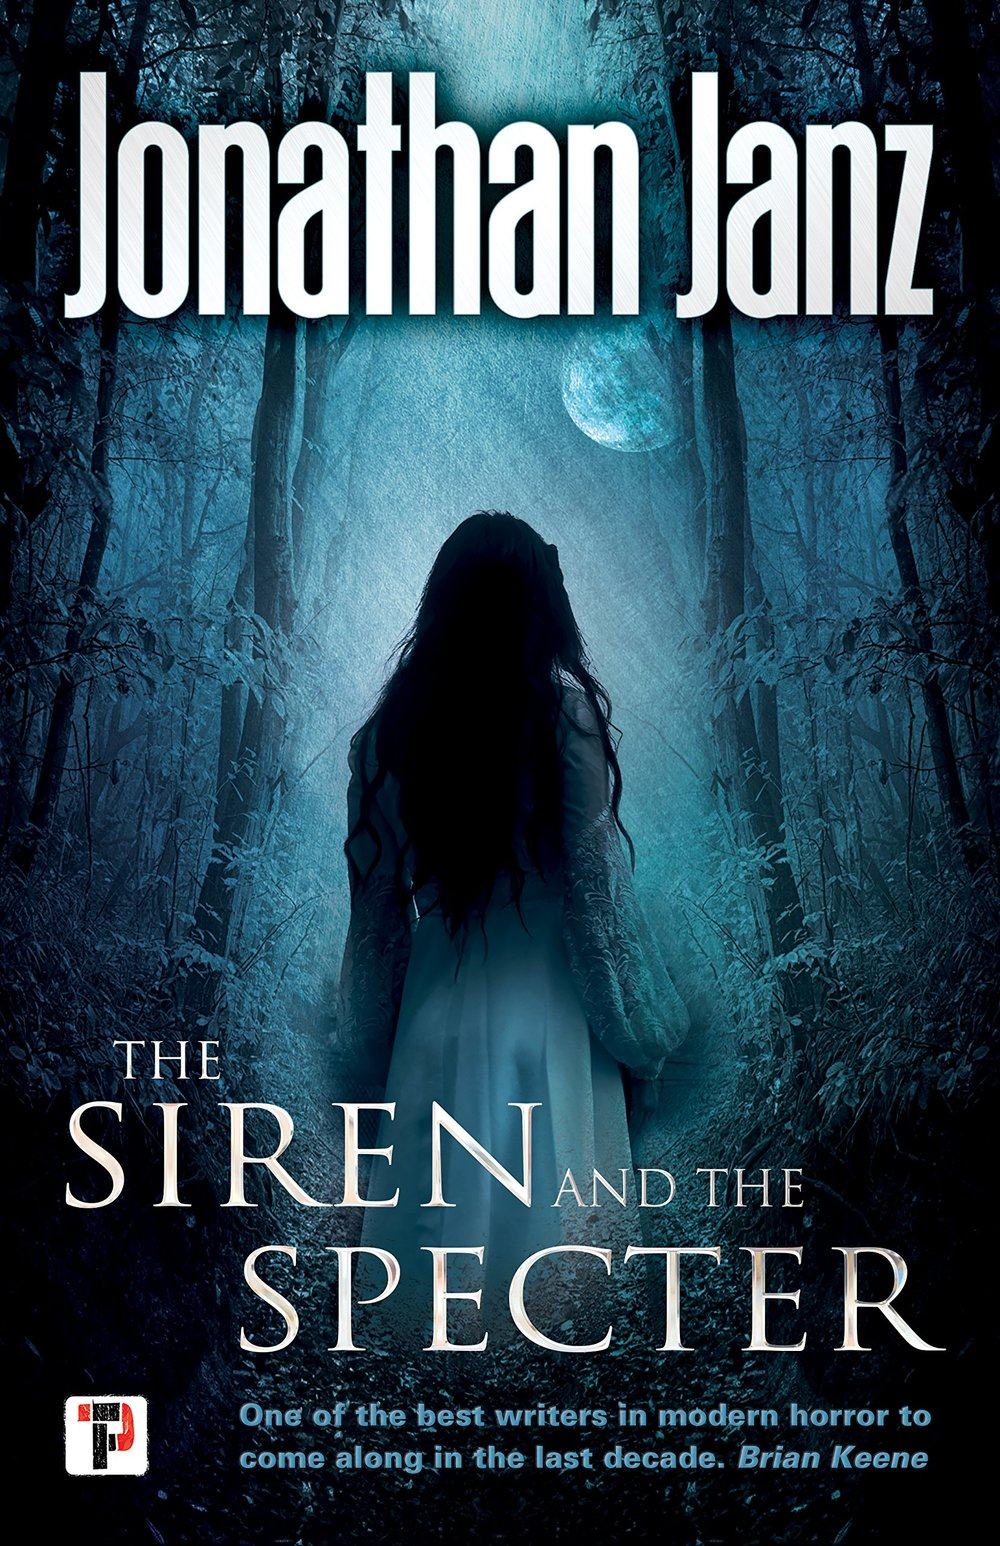 the siren and the specter_jonathan janz.jpg